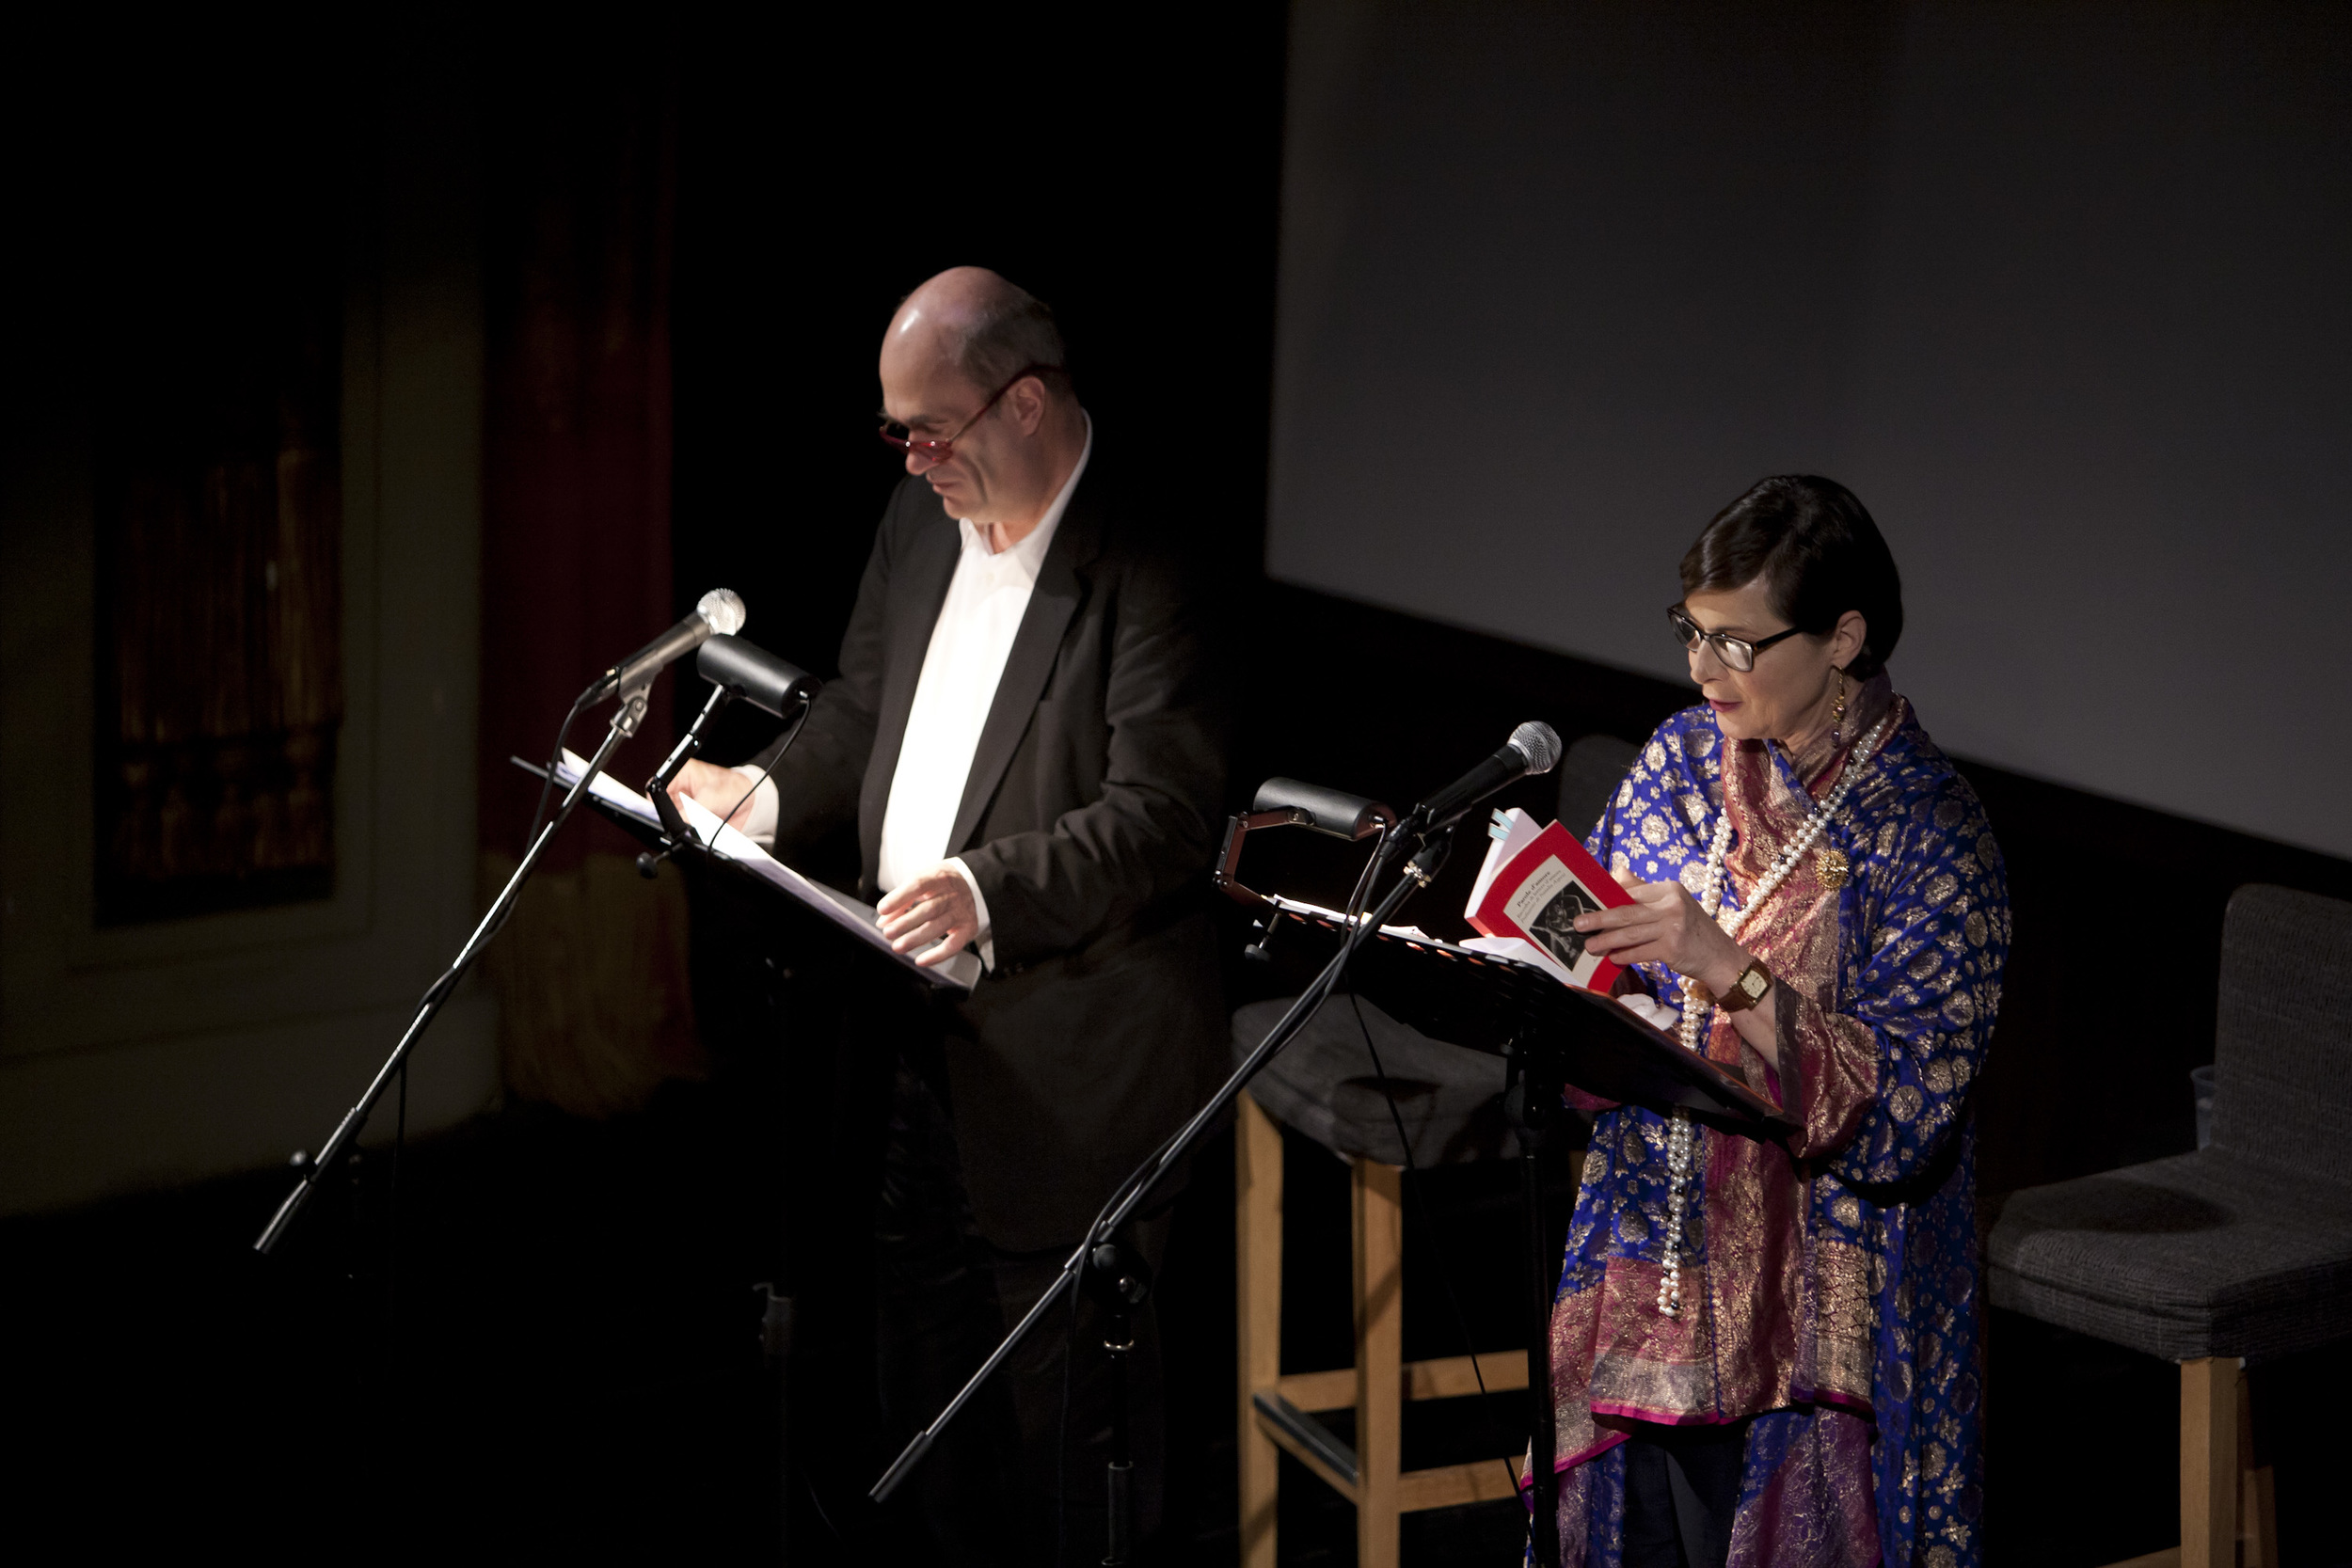 """Colm Toibin and Isabella Rossellini during their """"Love Letters"""" recital at the Cinema Odeon"""